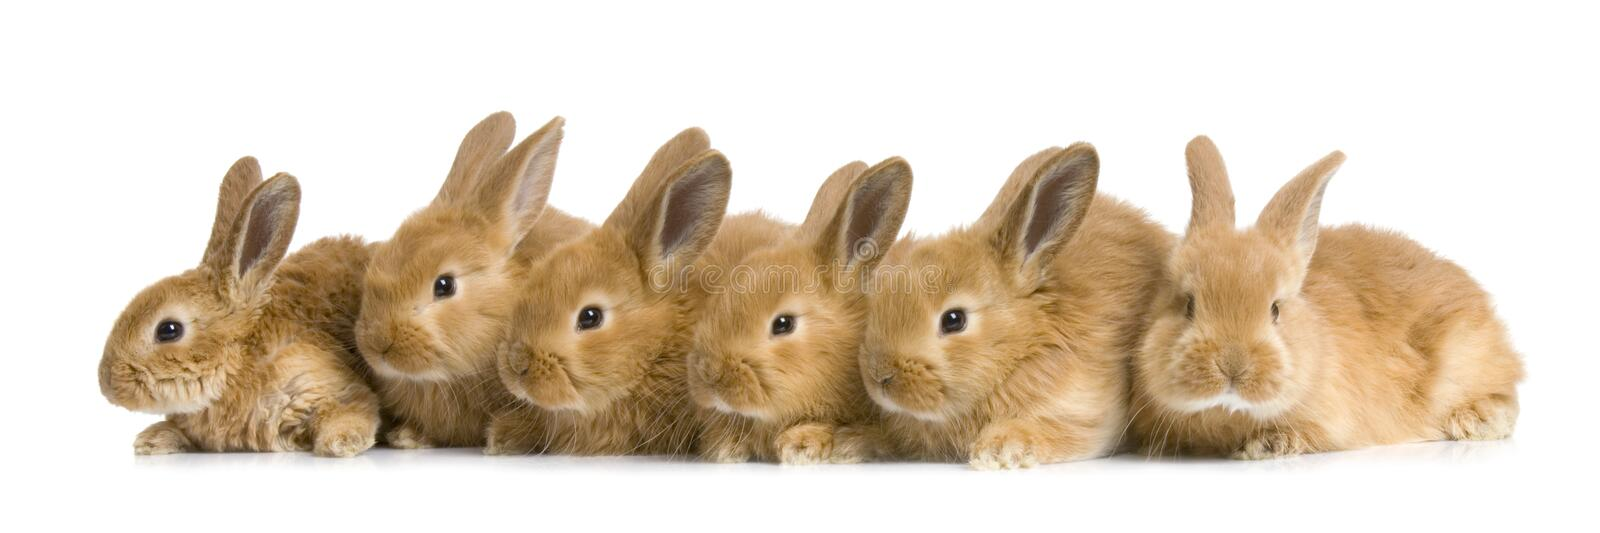 Group of bunnies royalty free stock image